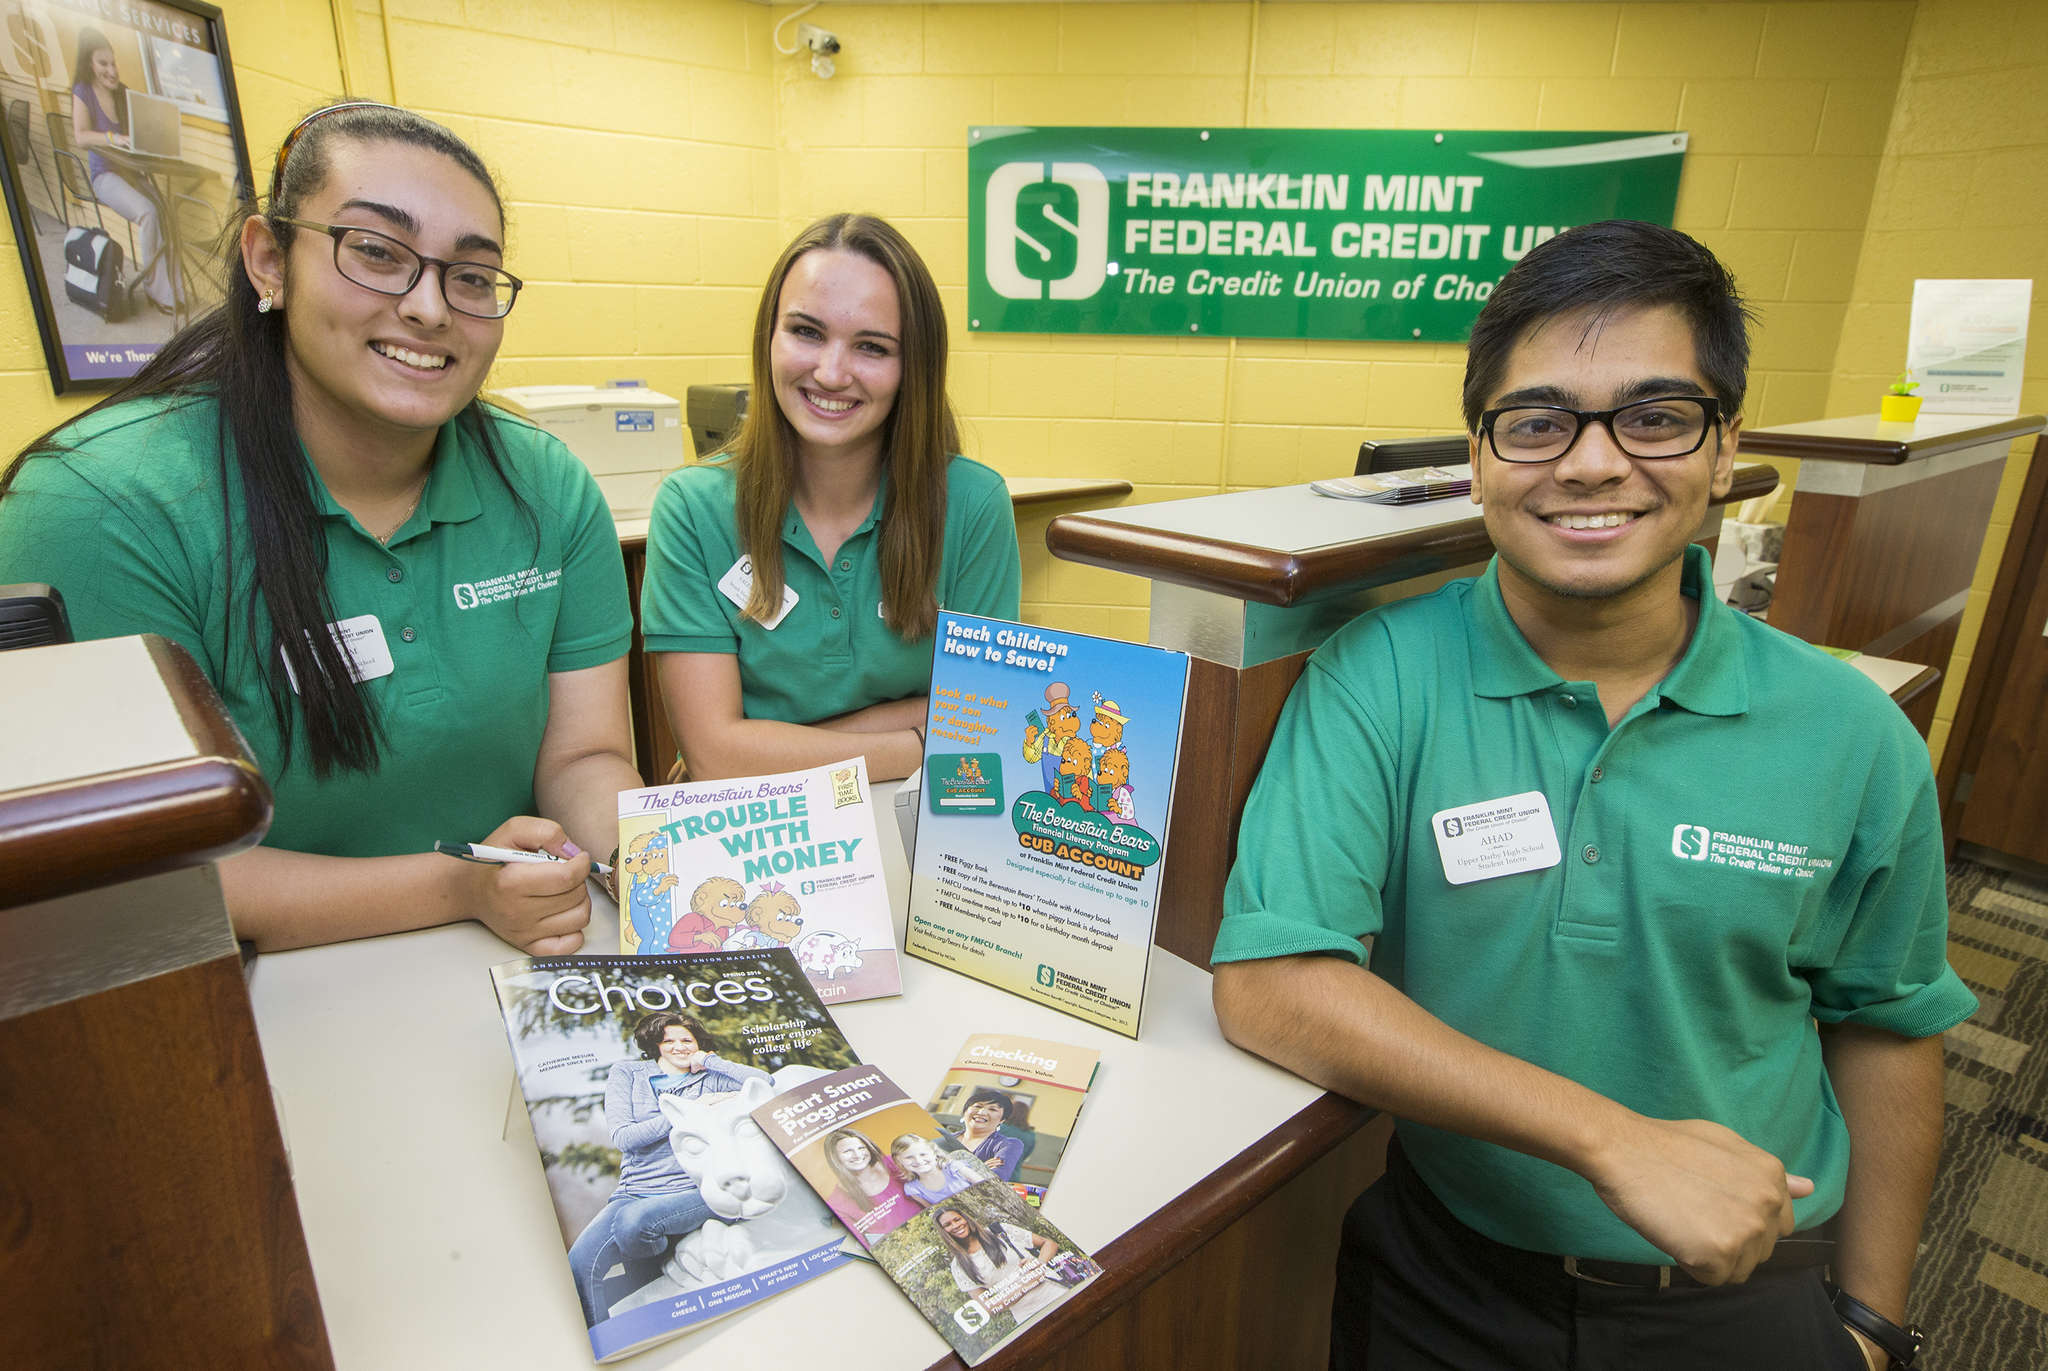 Students (from left) Mariam Sharobeem, Valerie Cheney, and Ahad Rafi worked at Franklin Mint Federal Credit Union branches set up in their high schools and said they learned a lot about personal finance.